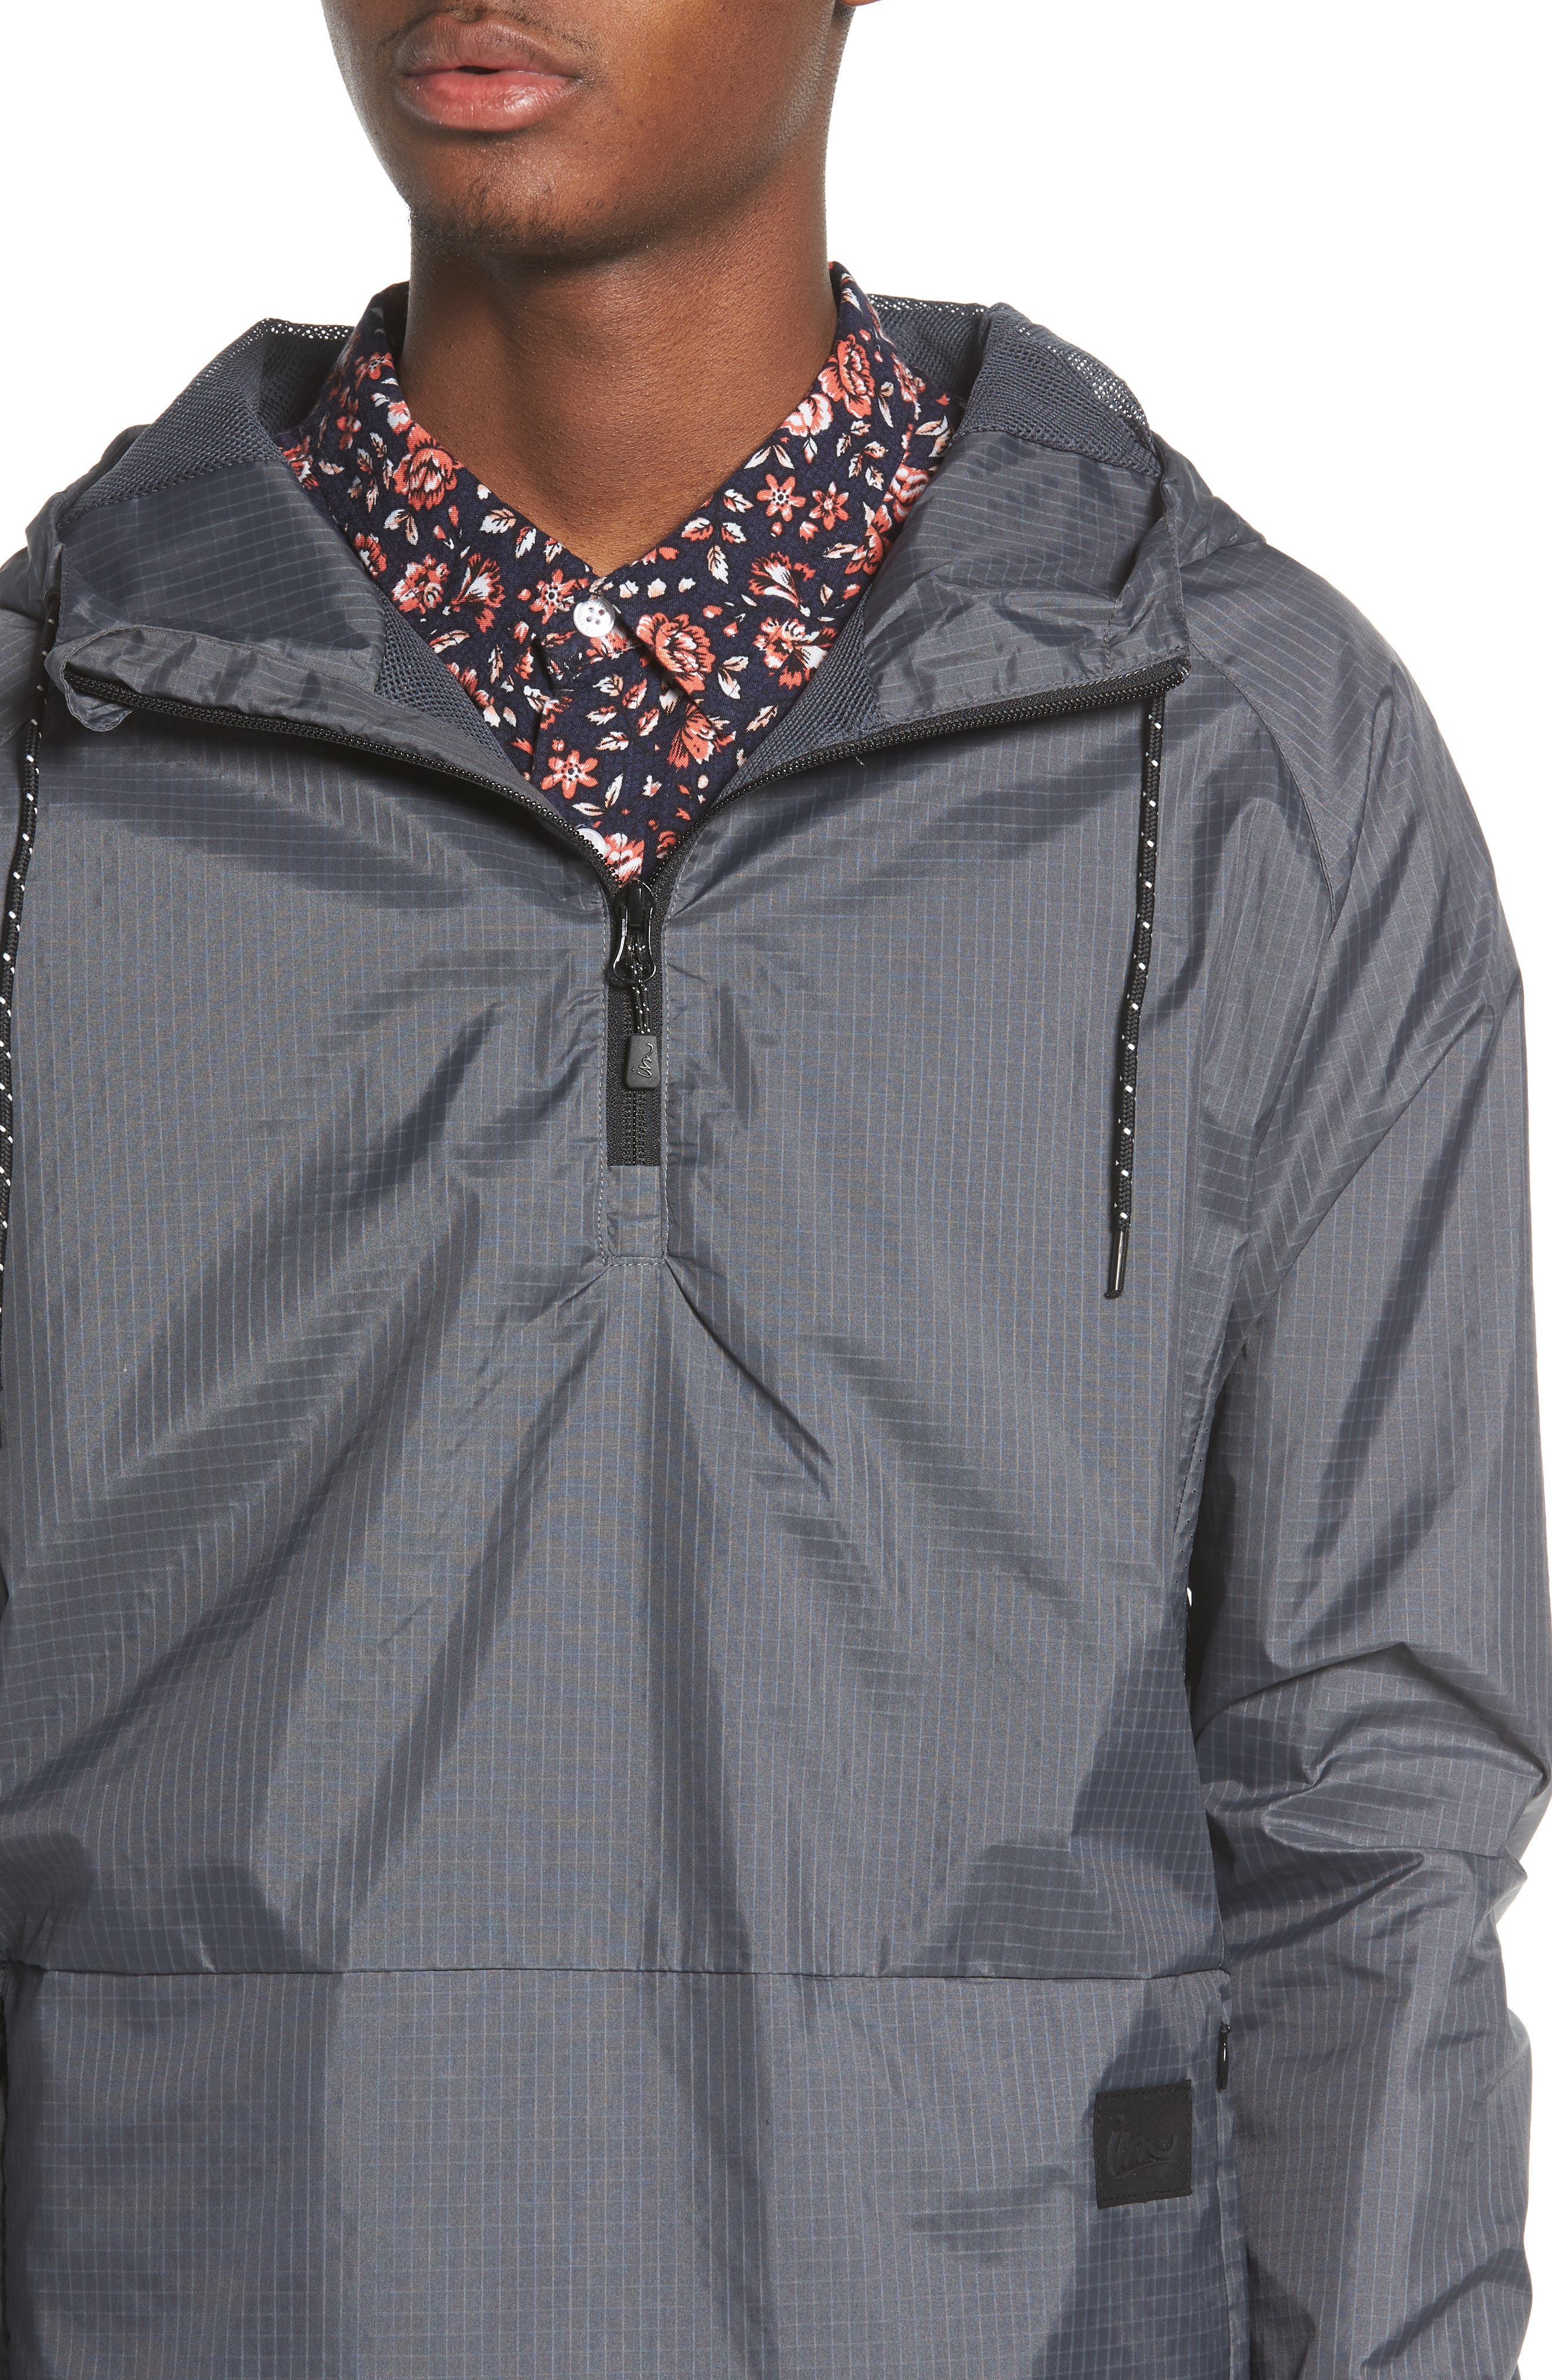 NCT Bezel Packable Anorak,                             Alternate thumbnail 4, color,                             Asphalt